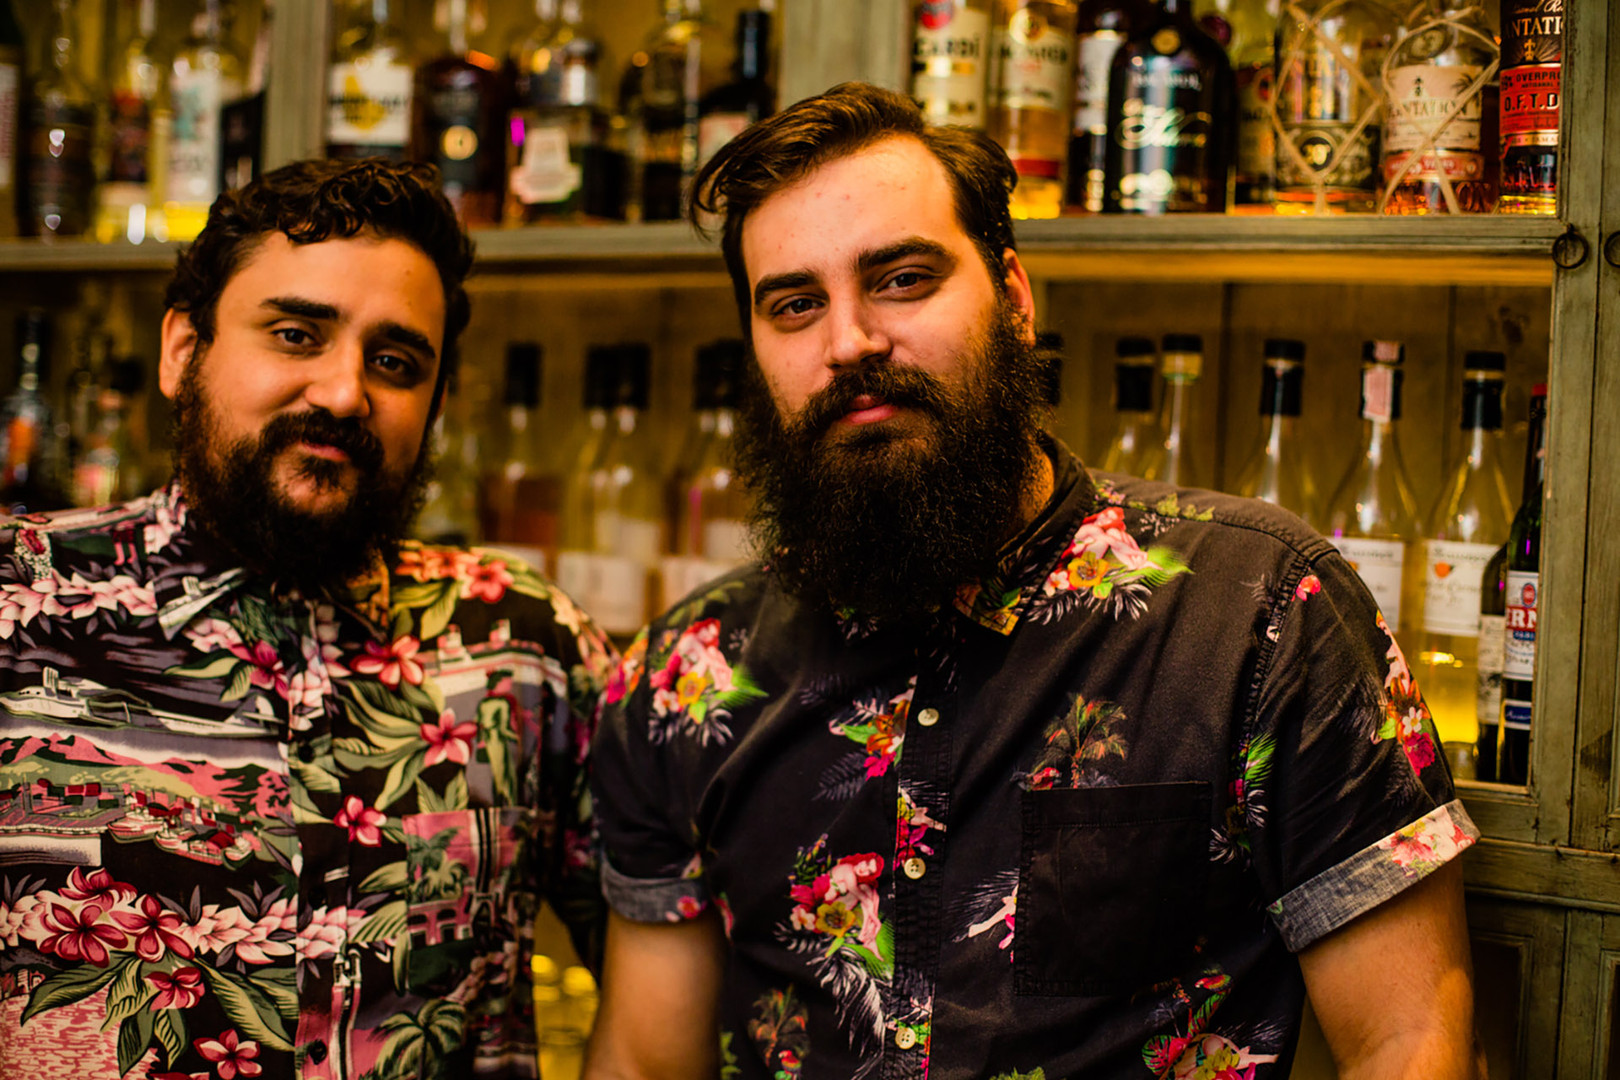 Tropic City Founders Sebastian De La Cruz & Philip Stefanescu